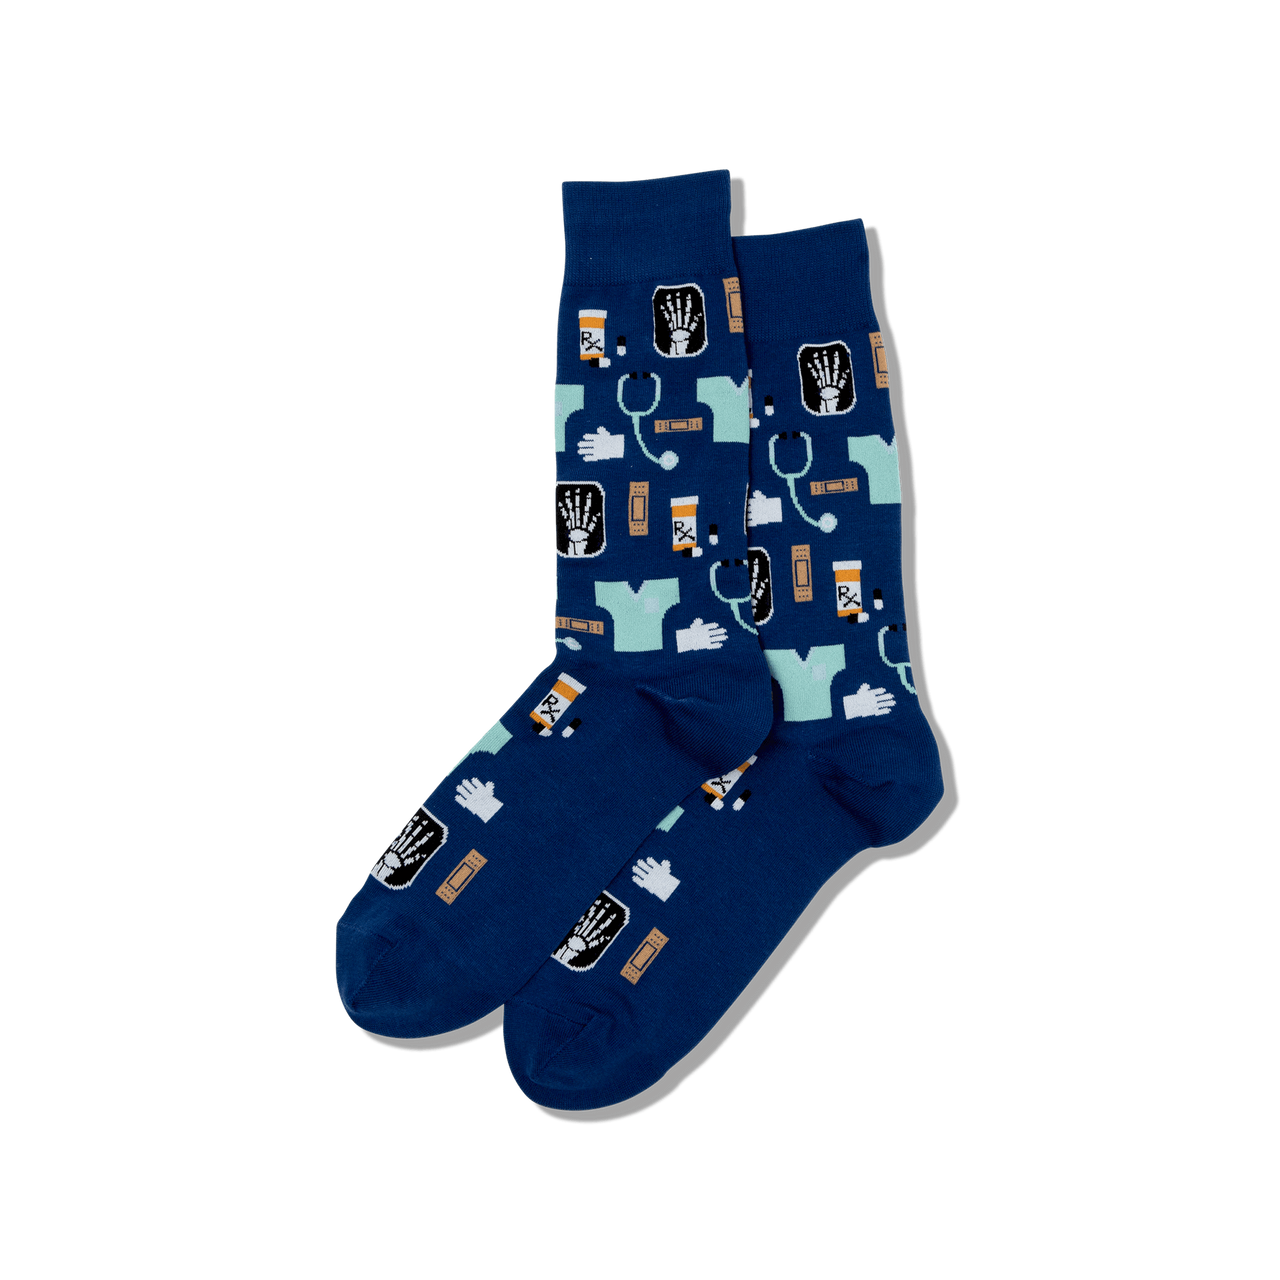 Men's Medical Socks